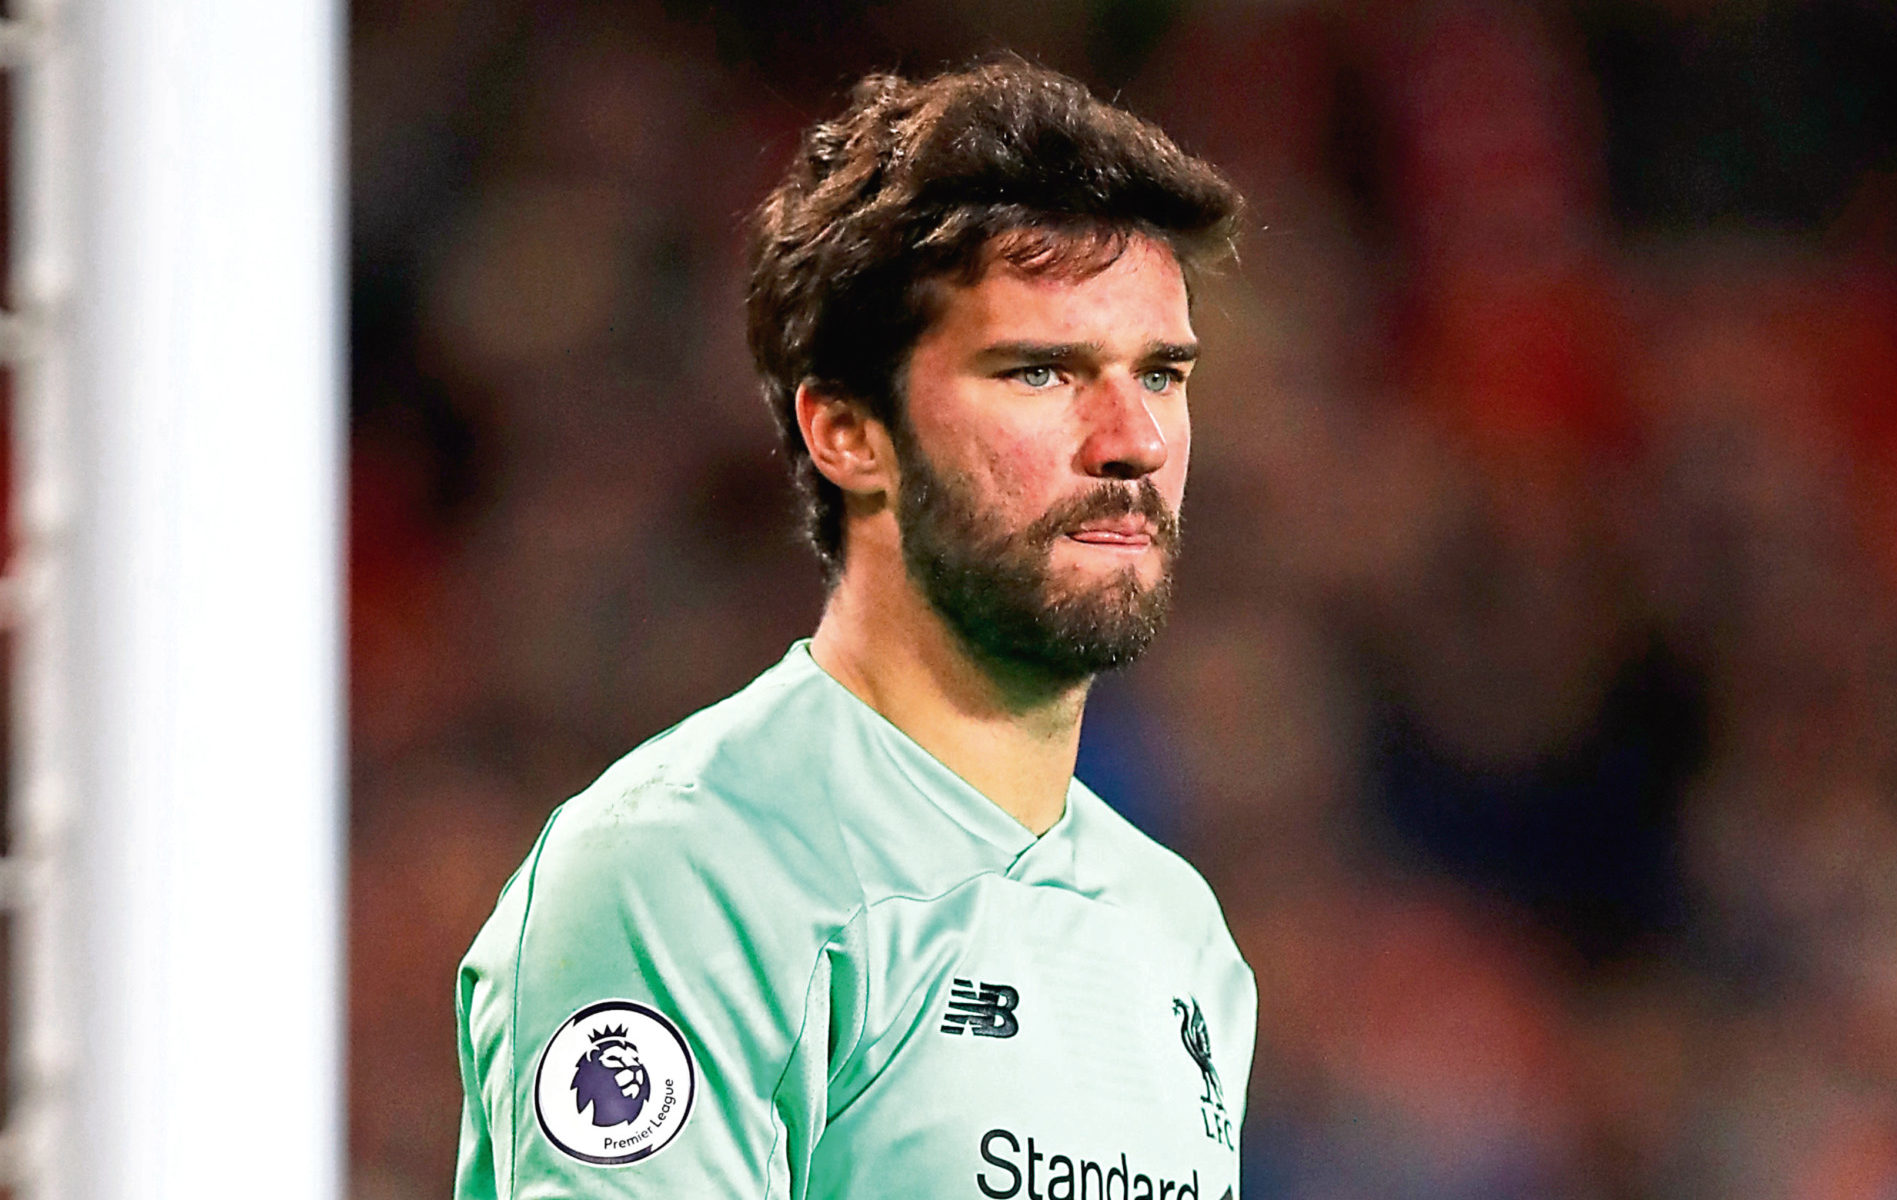 Liverpool goalkeeper Alisson